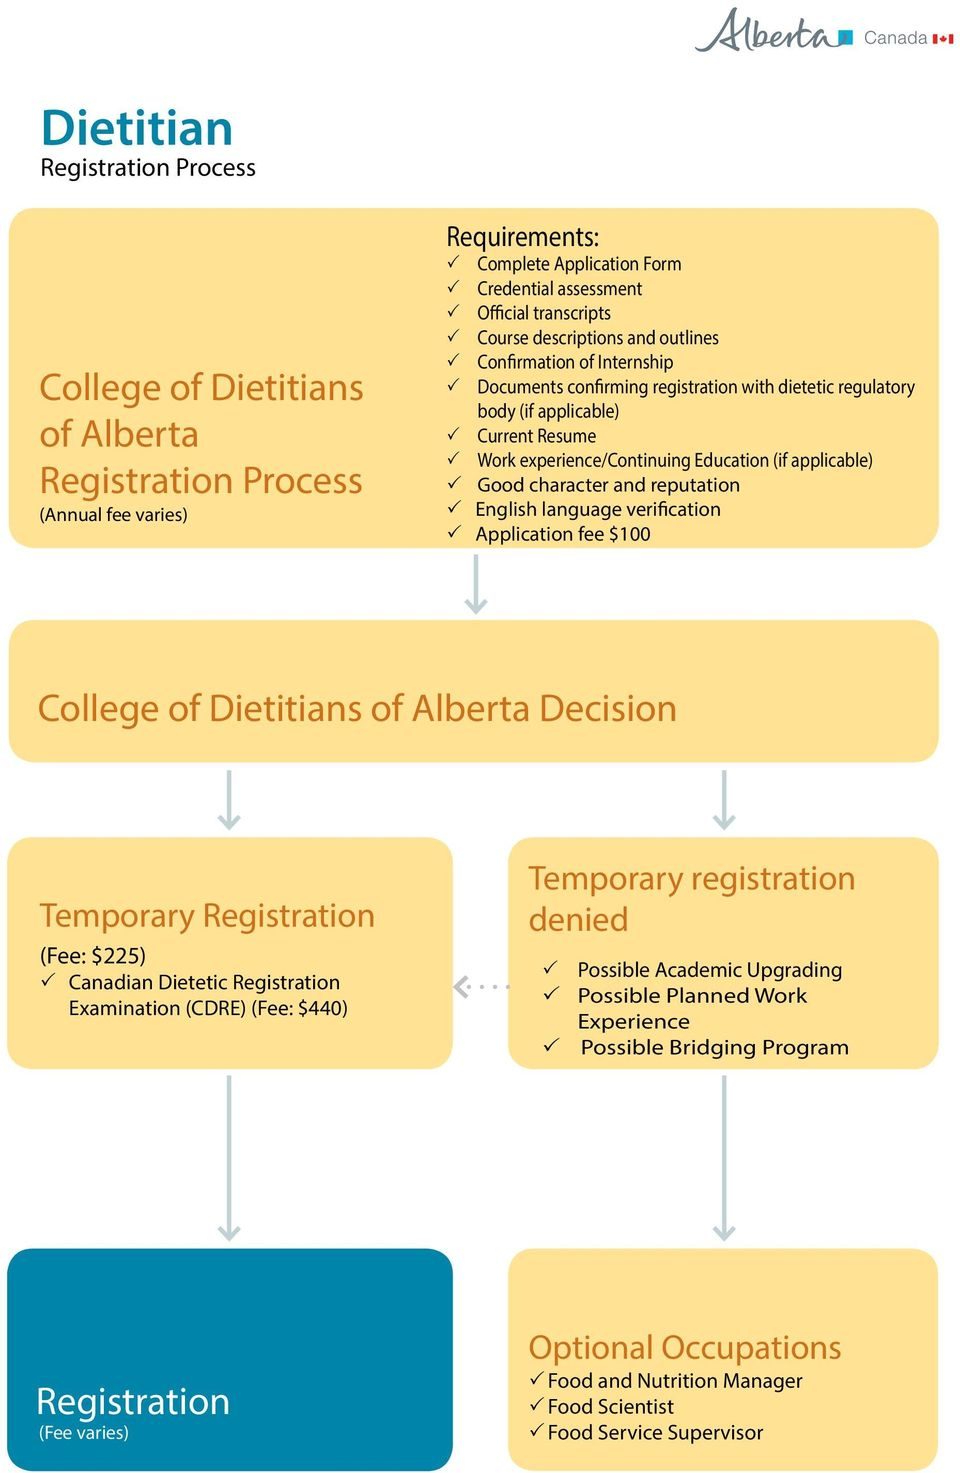 applicable) Good character and reputation English language verification Application fee $100 College of Dietitians of Alberta Decision Temporary Registration (Fee: $225) Canadian Dietetic